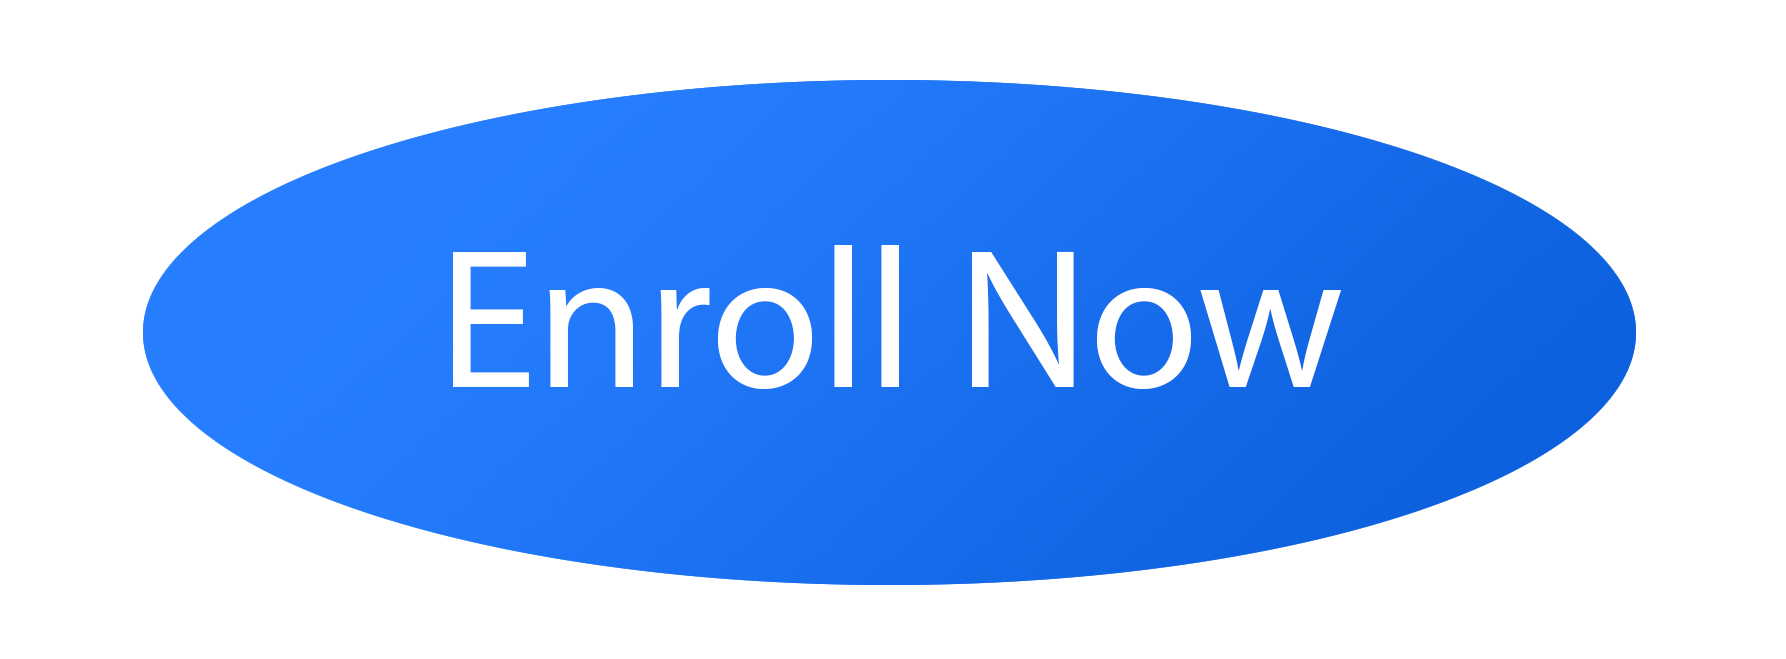 Enroll Now.png